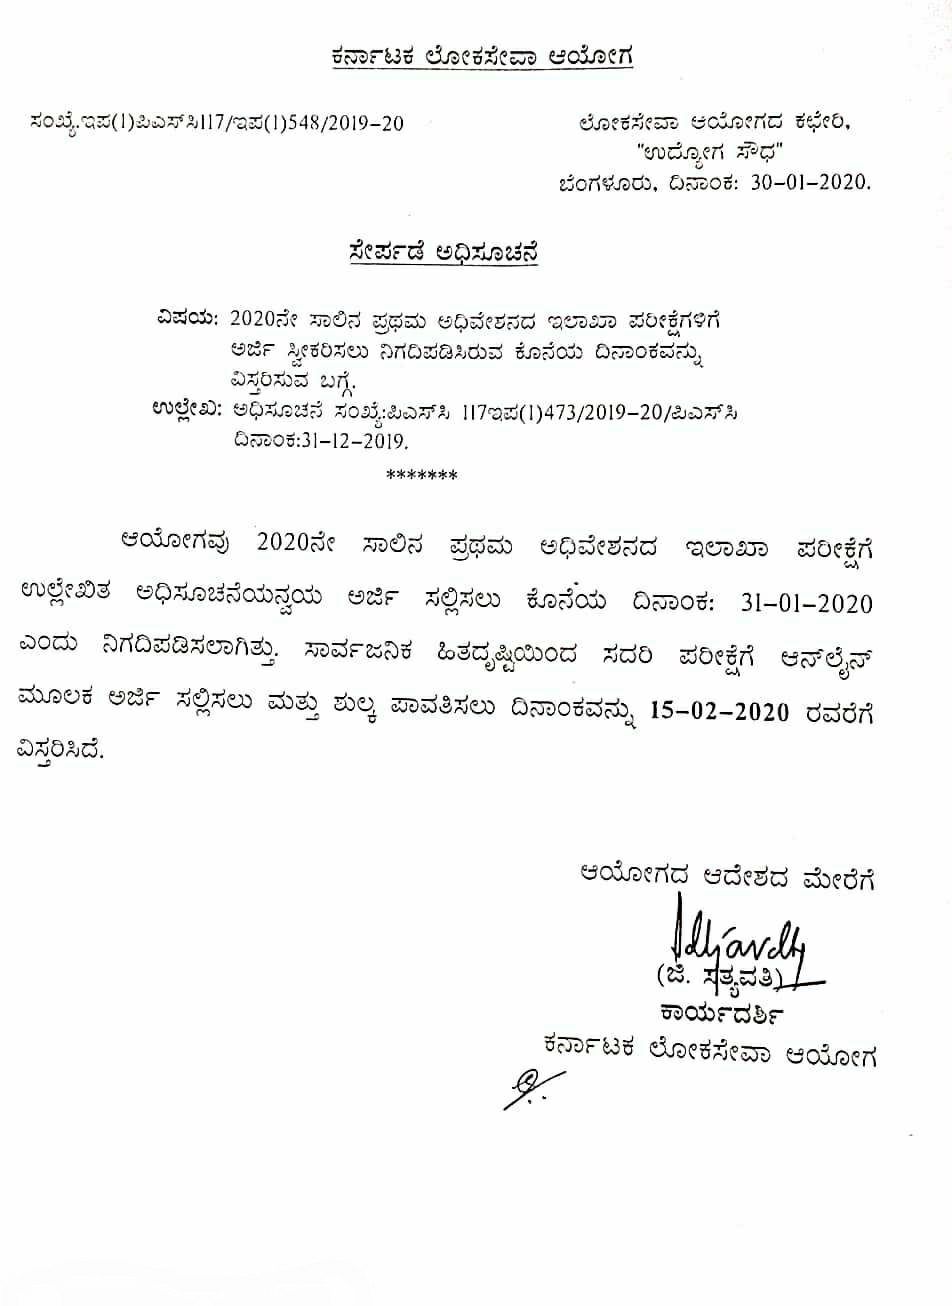 Join Notification on Expanding Deadline for Applying for Departmental Examinations for the First Session of the Karnataka Lokasewa Commission, 2020: 30-01-2020